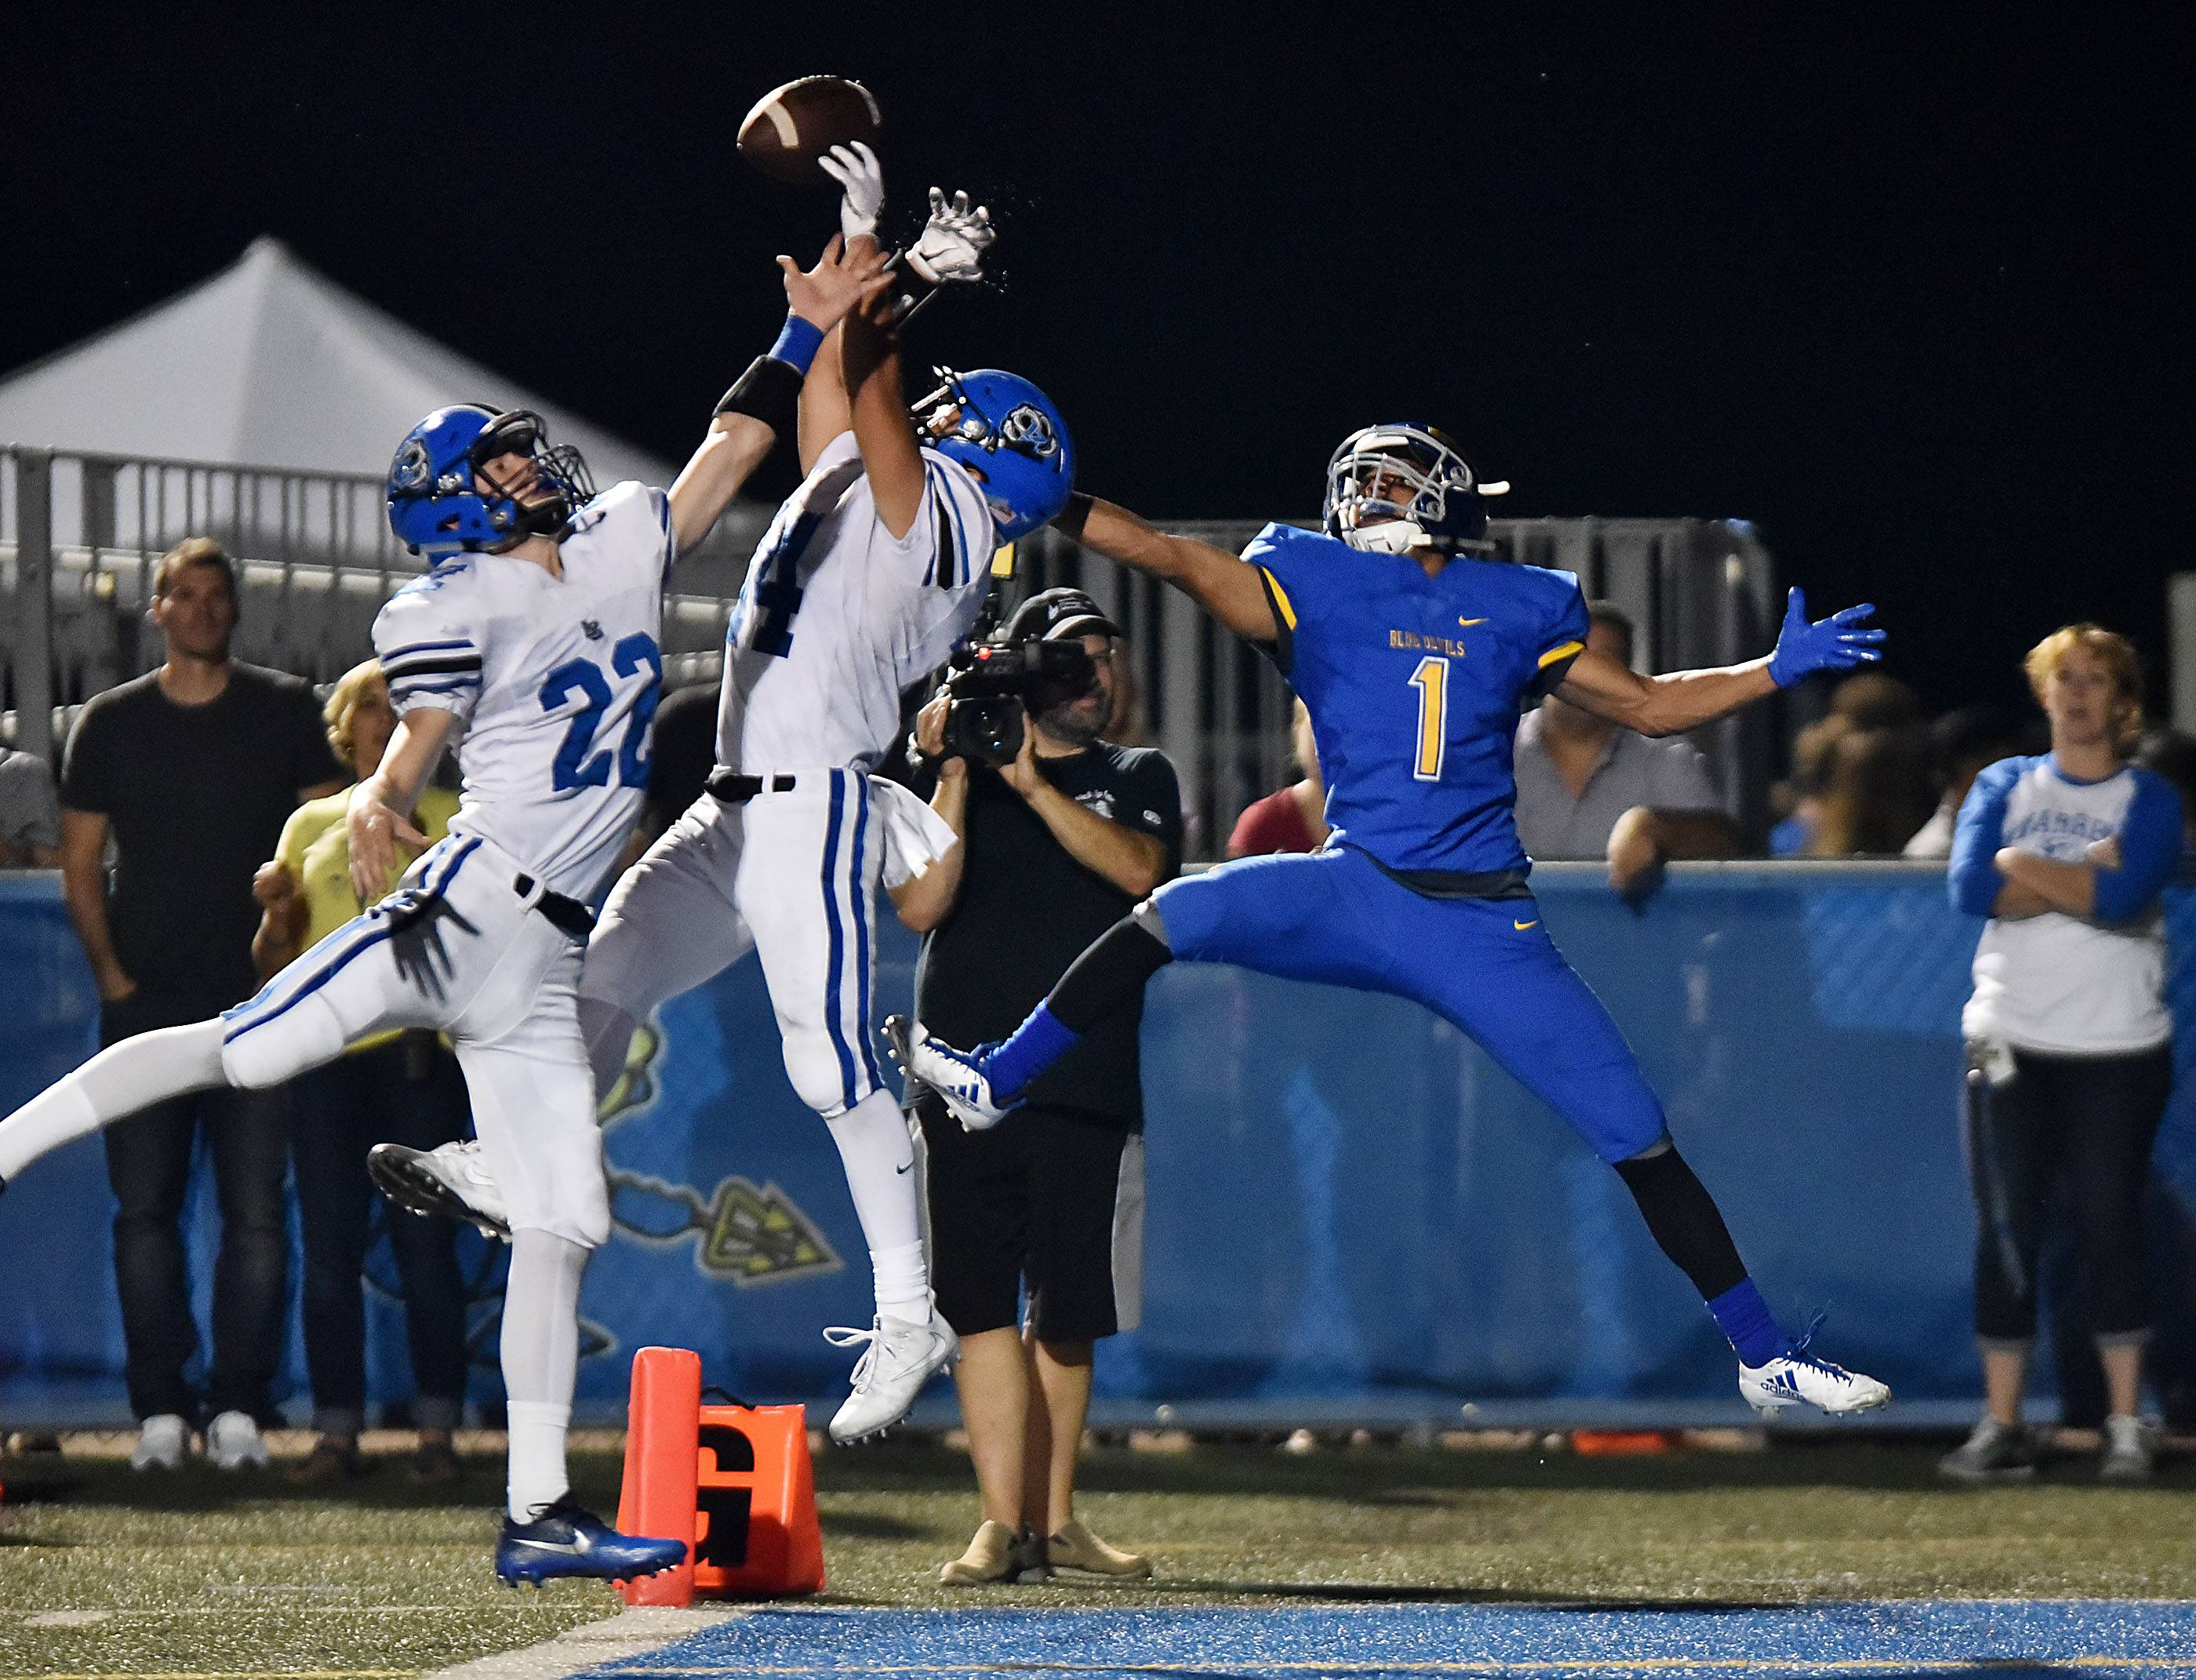 Lake Zurich's Austin Le Page breaks up a pass in the engine intended for Warren's Jaden Quartey on Friday in Gurnee.